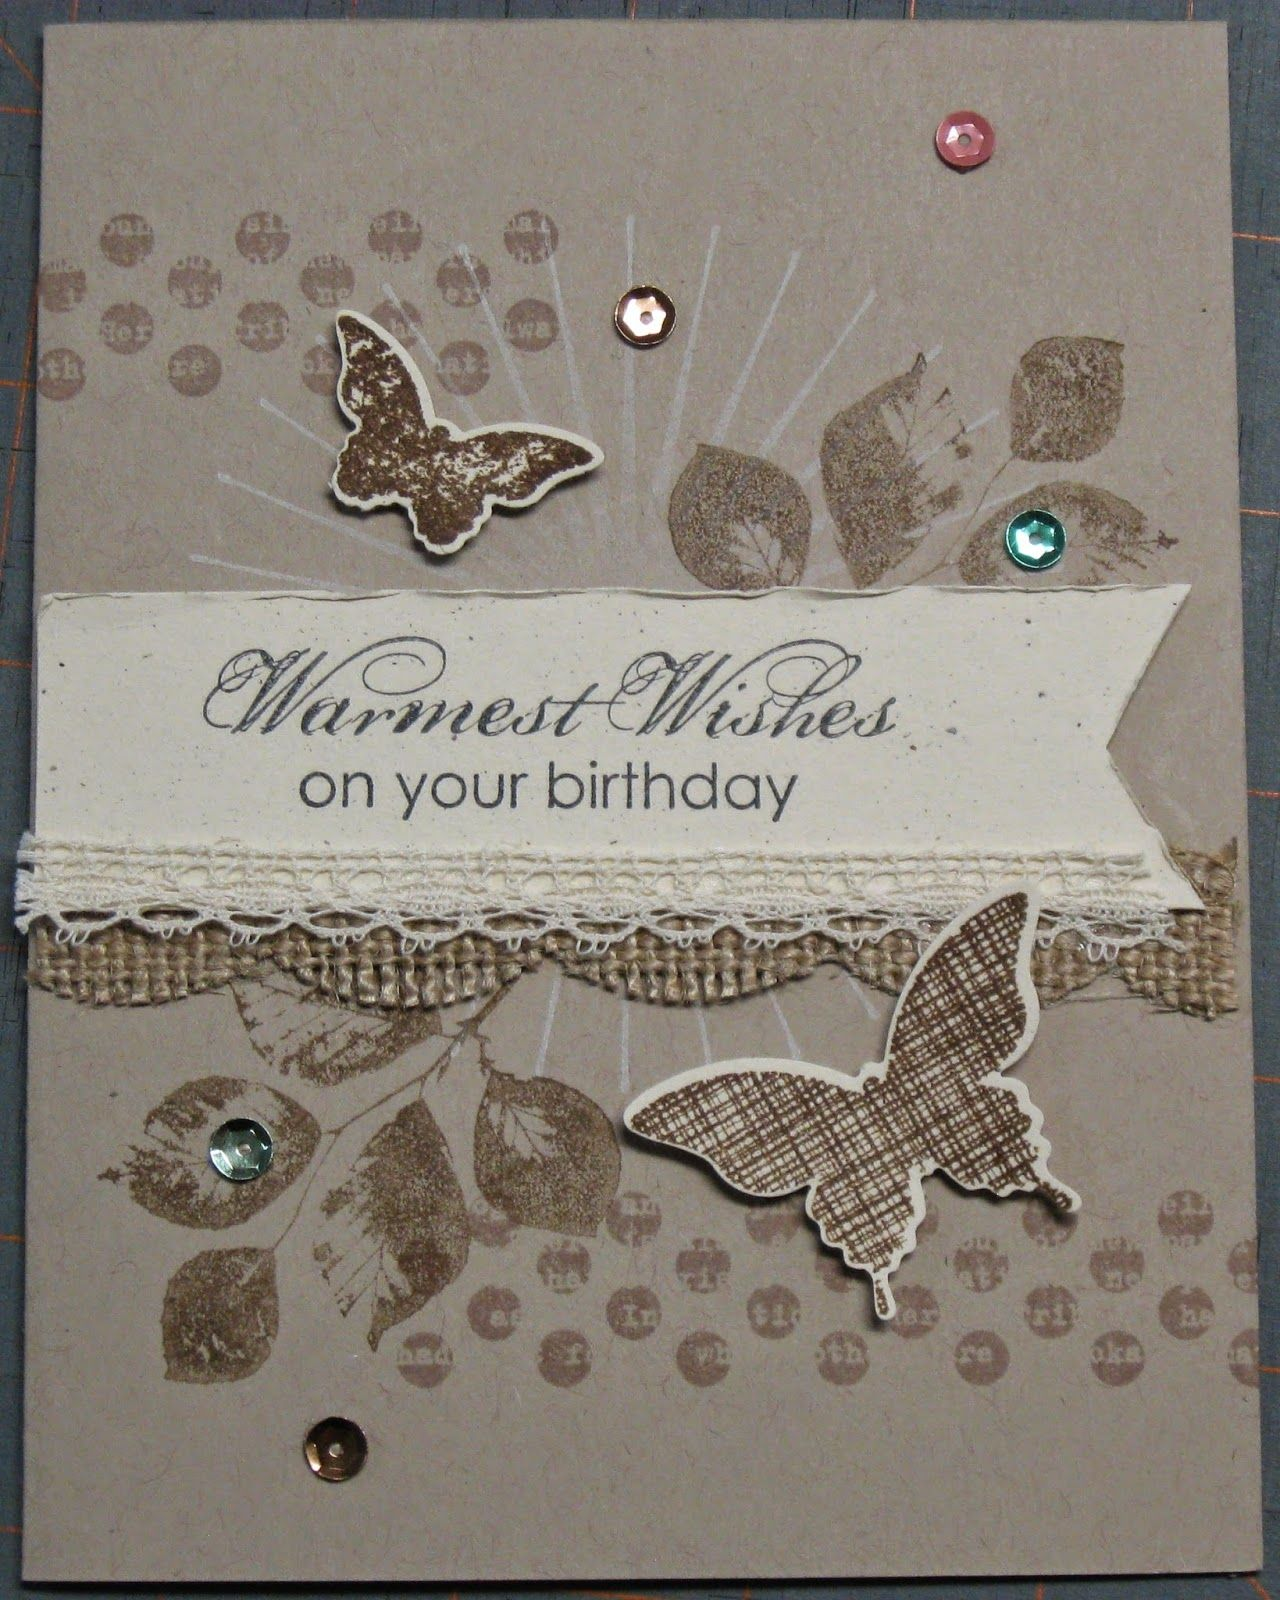 Kinda Eclectic Other New Supplies Used On This Card Are The In